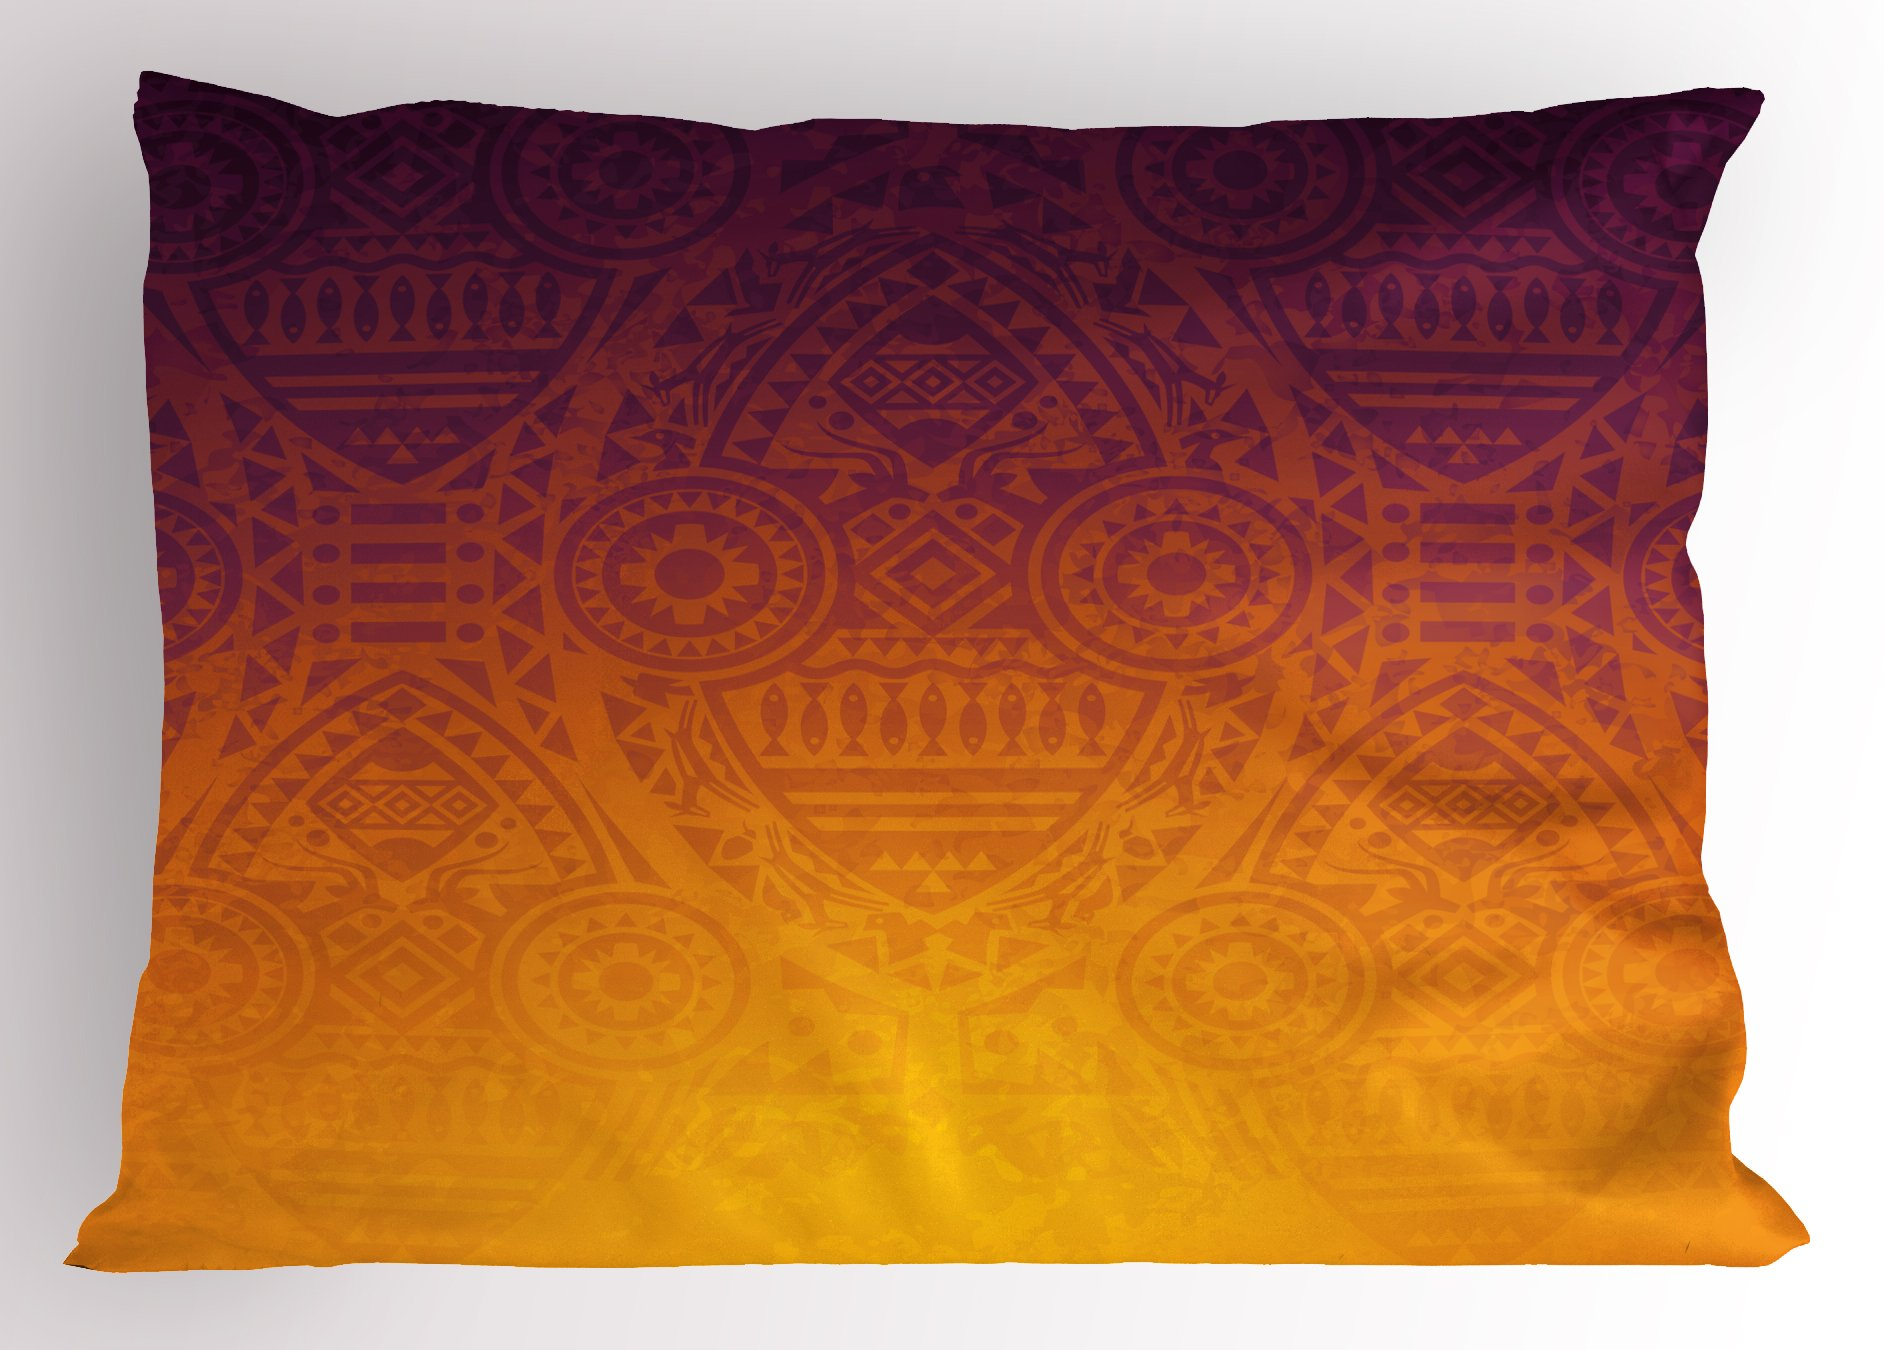 Lunarable Ethnic Pillow Sham, Mysterious African Tribal Wall Motifs with Mask Ceremonial Mystical Sacred Artwork, Decorative Standard Queen Size Printed Pillowcase, 30 X 20 inches, Burnt Orange